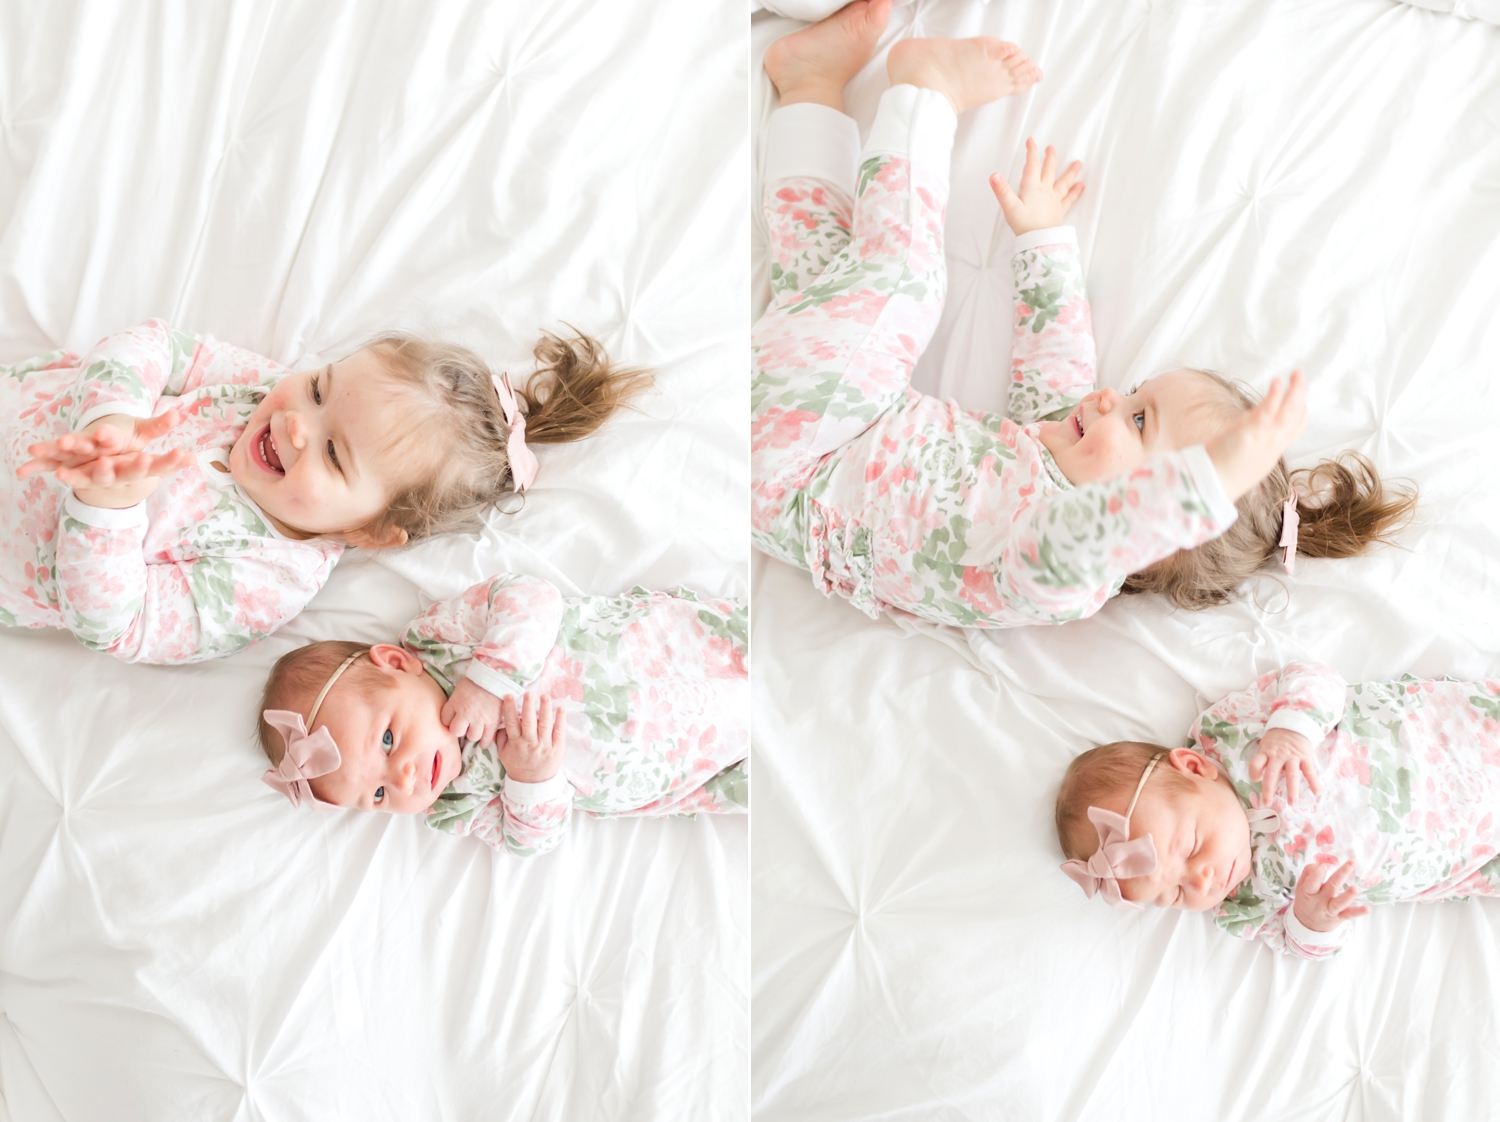 Definition of a photoshoot with a toddler!